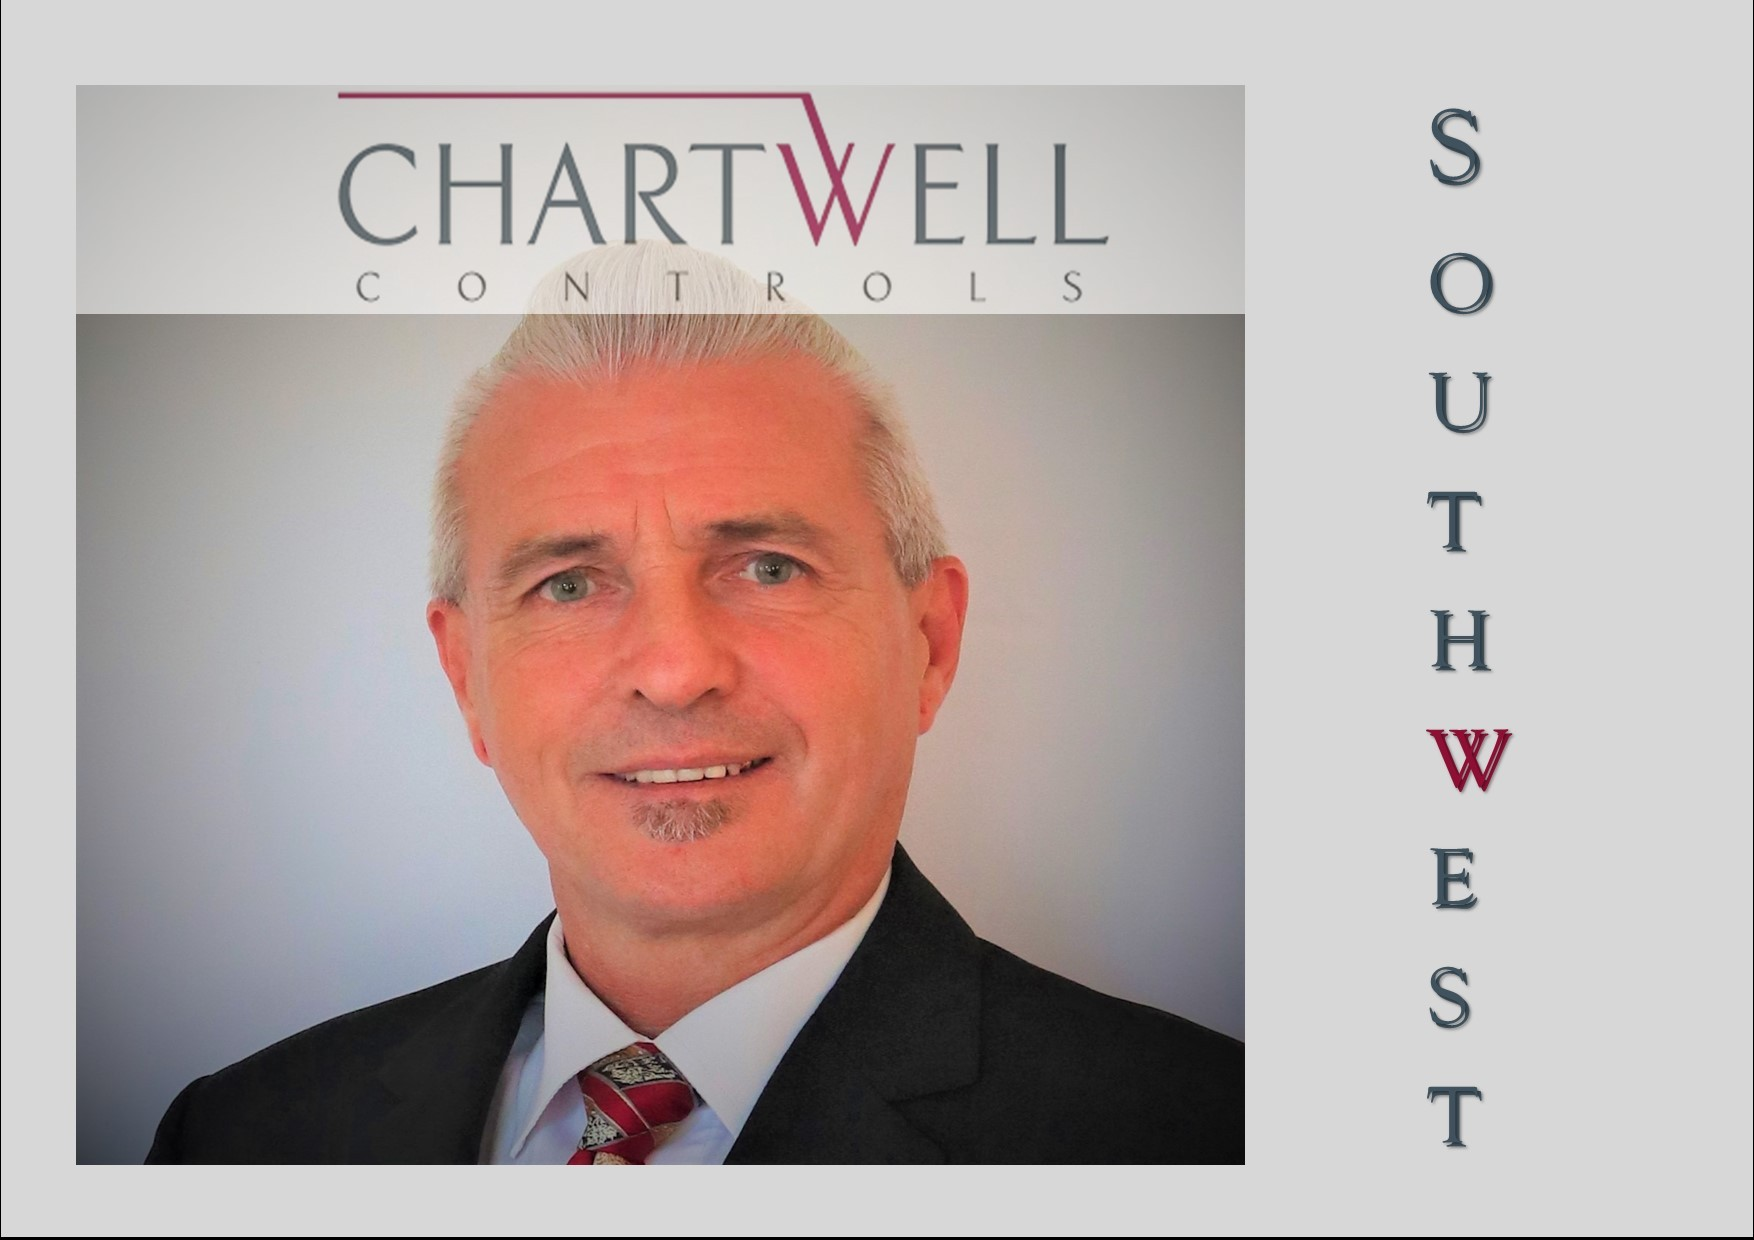 Chartwell are expanding their business into the South-West